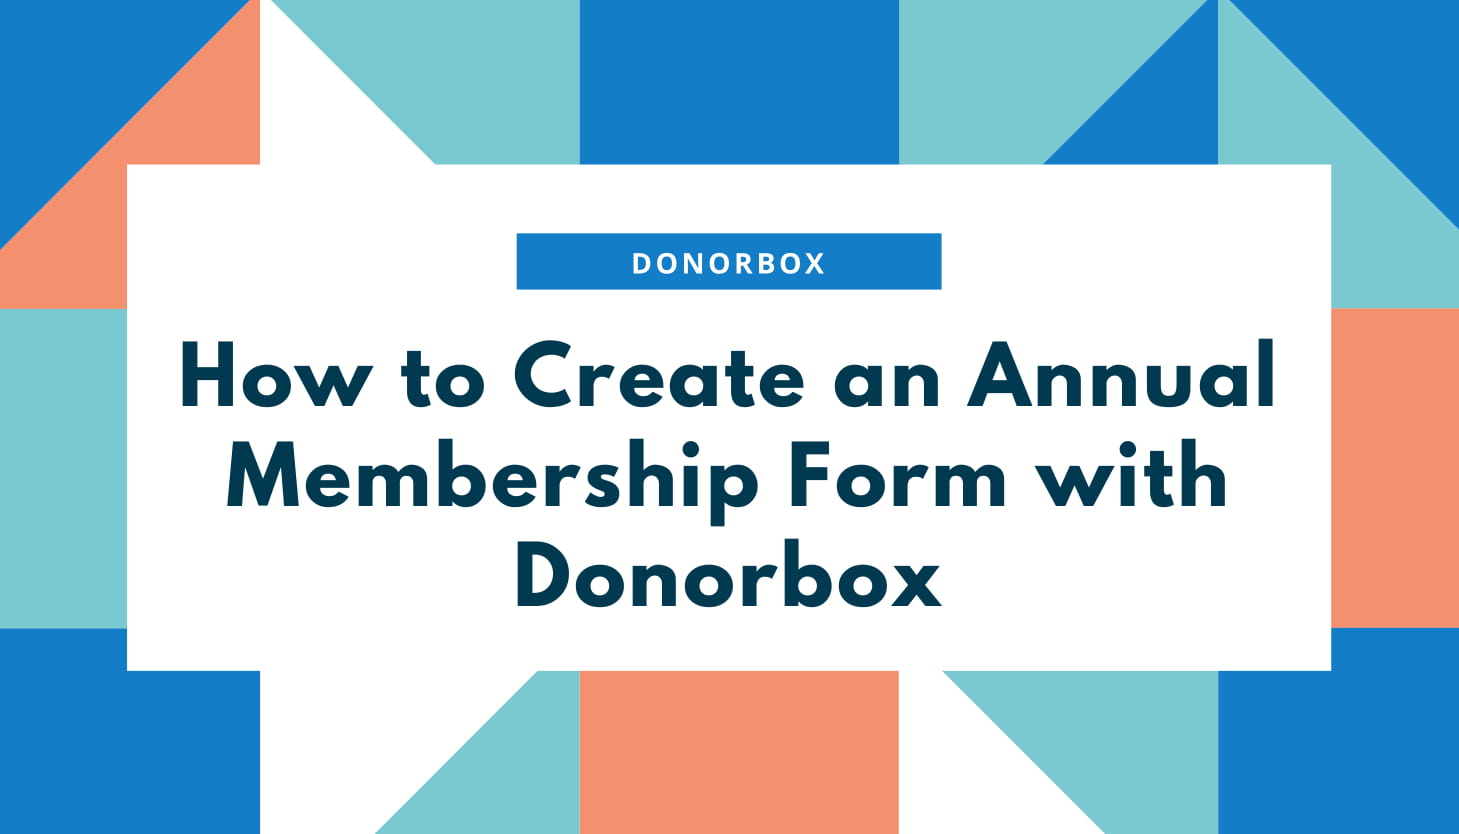 How to Create an Annual Membership Form with Donorbox